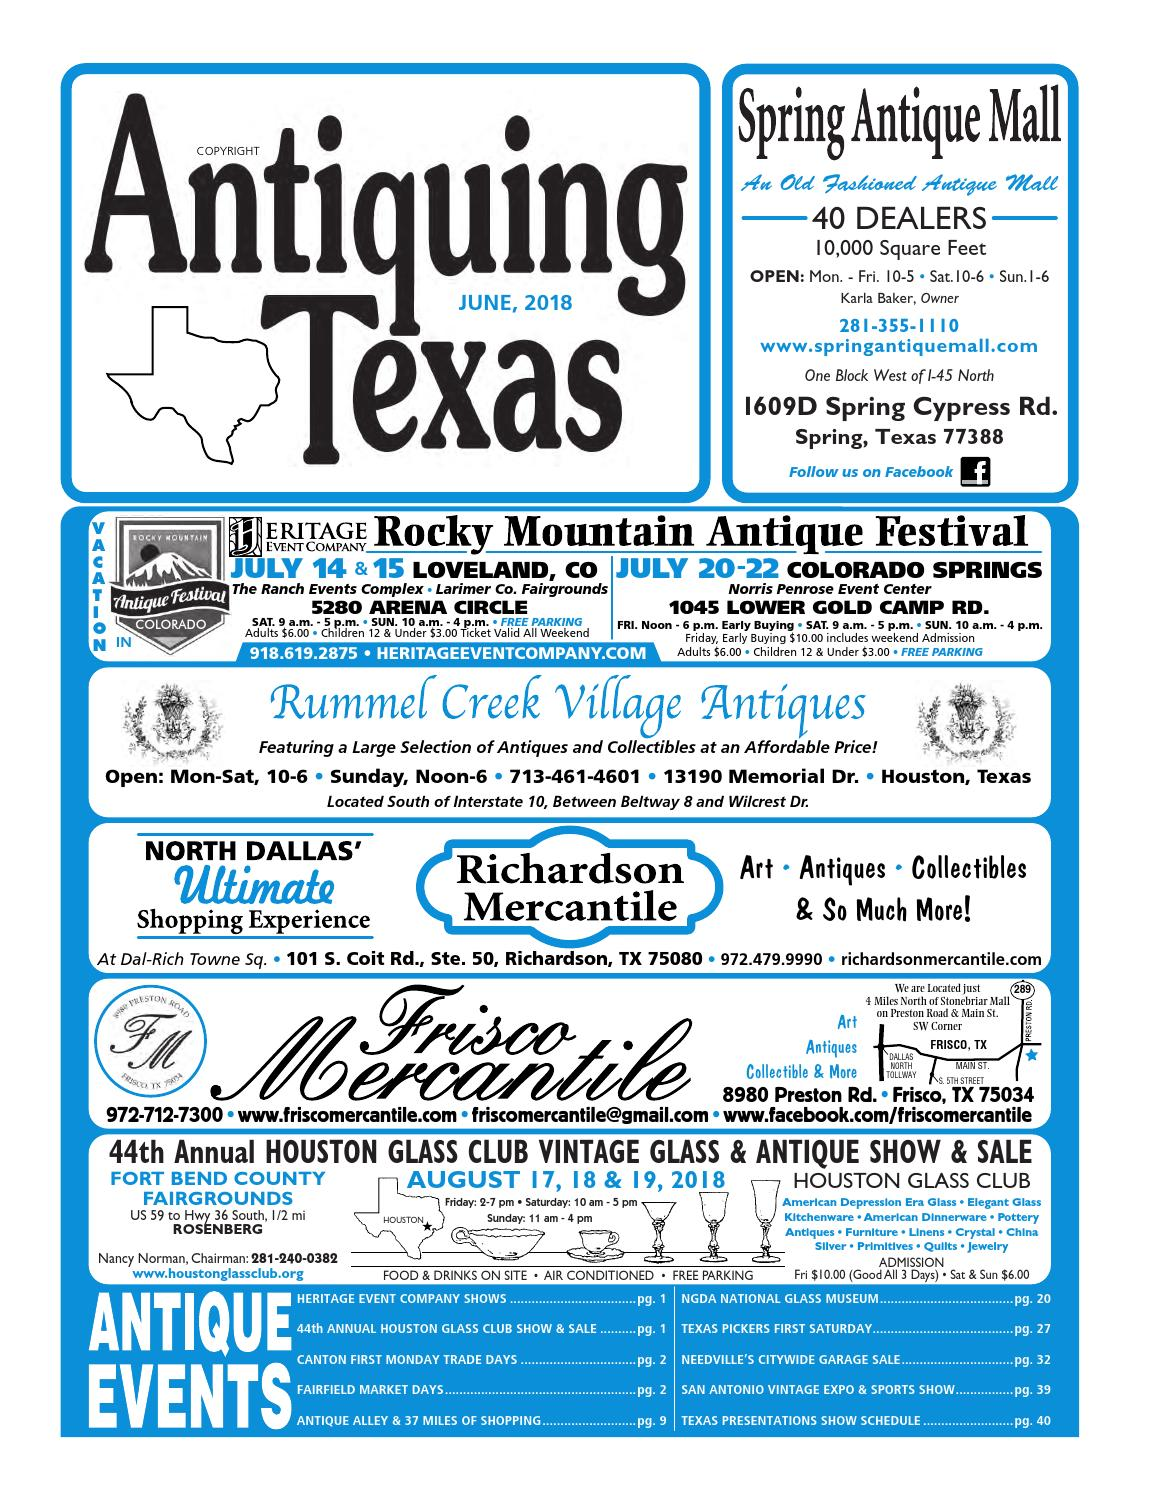 Ant tx upload 6 18 by Antiquing Texas - issuu